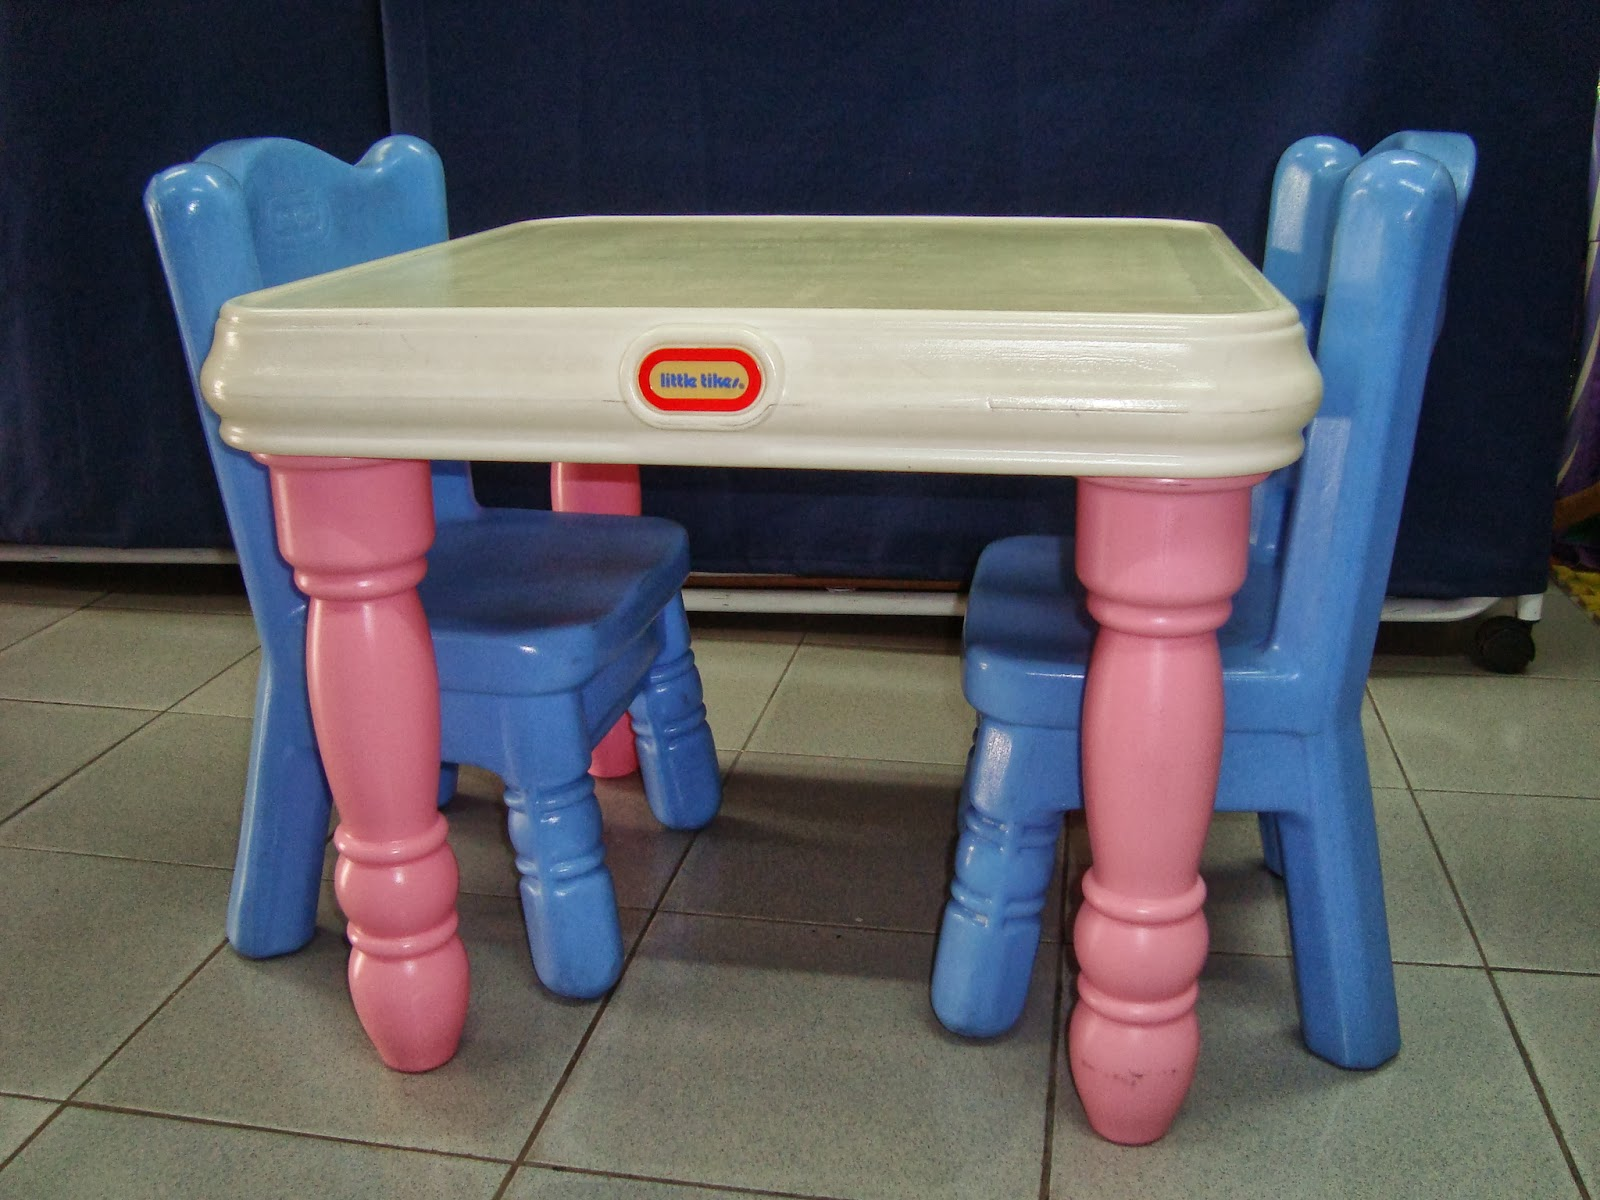 Little tikes table and chairs pink - Toys Thetottoys Little Tikes Victorian Tender Heart Table Chairs Euc